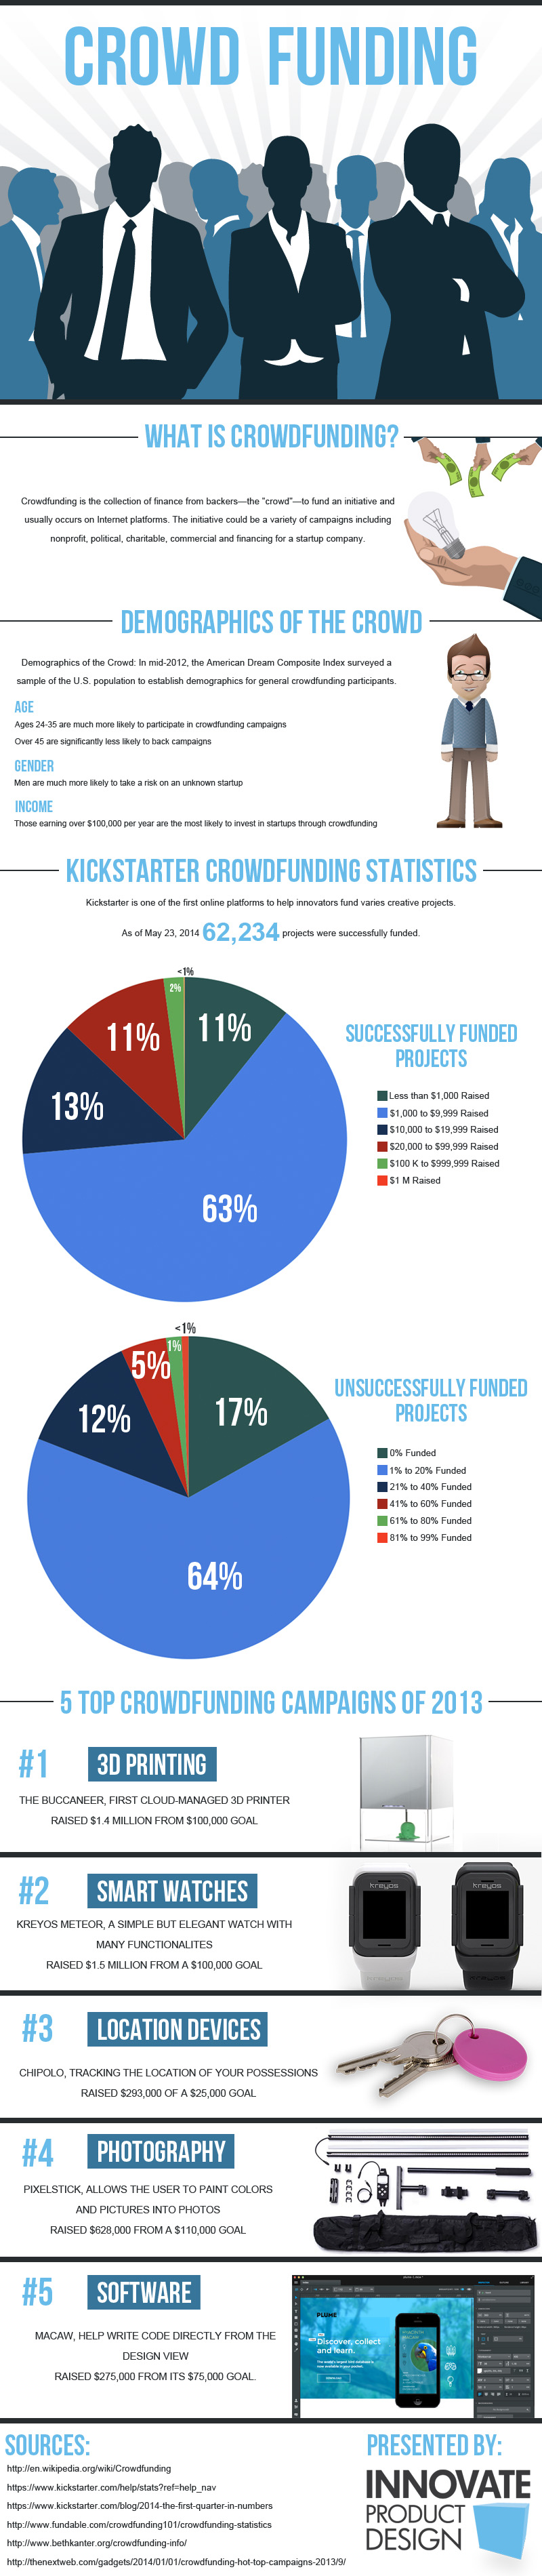 Crowdfunding Defined